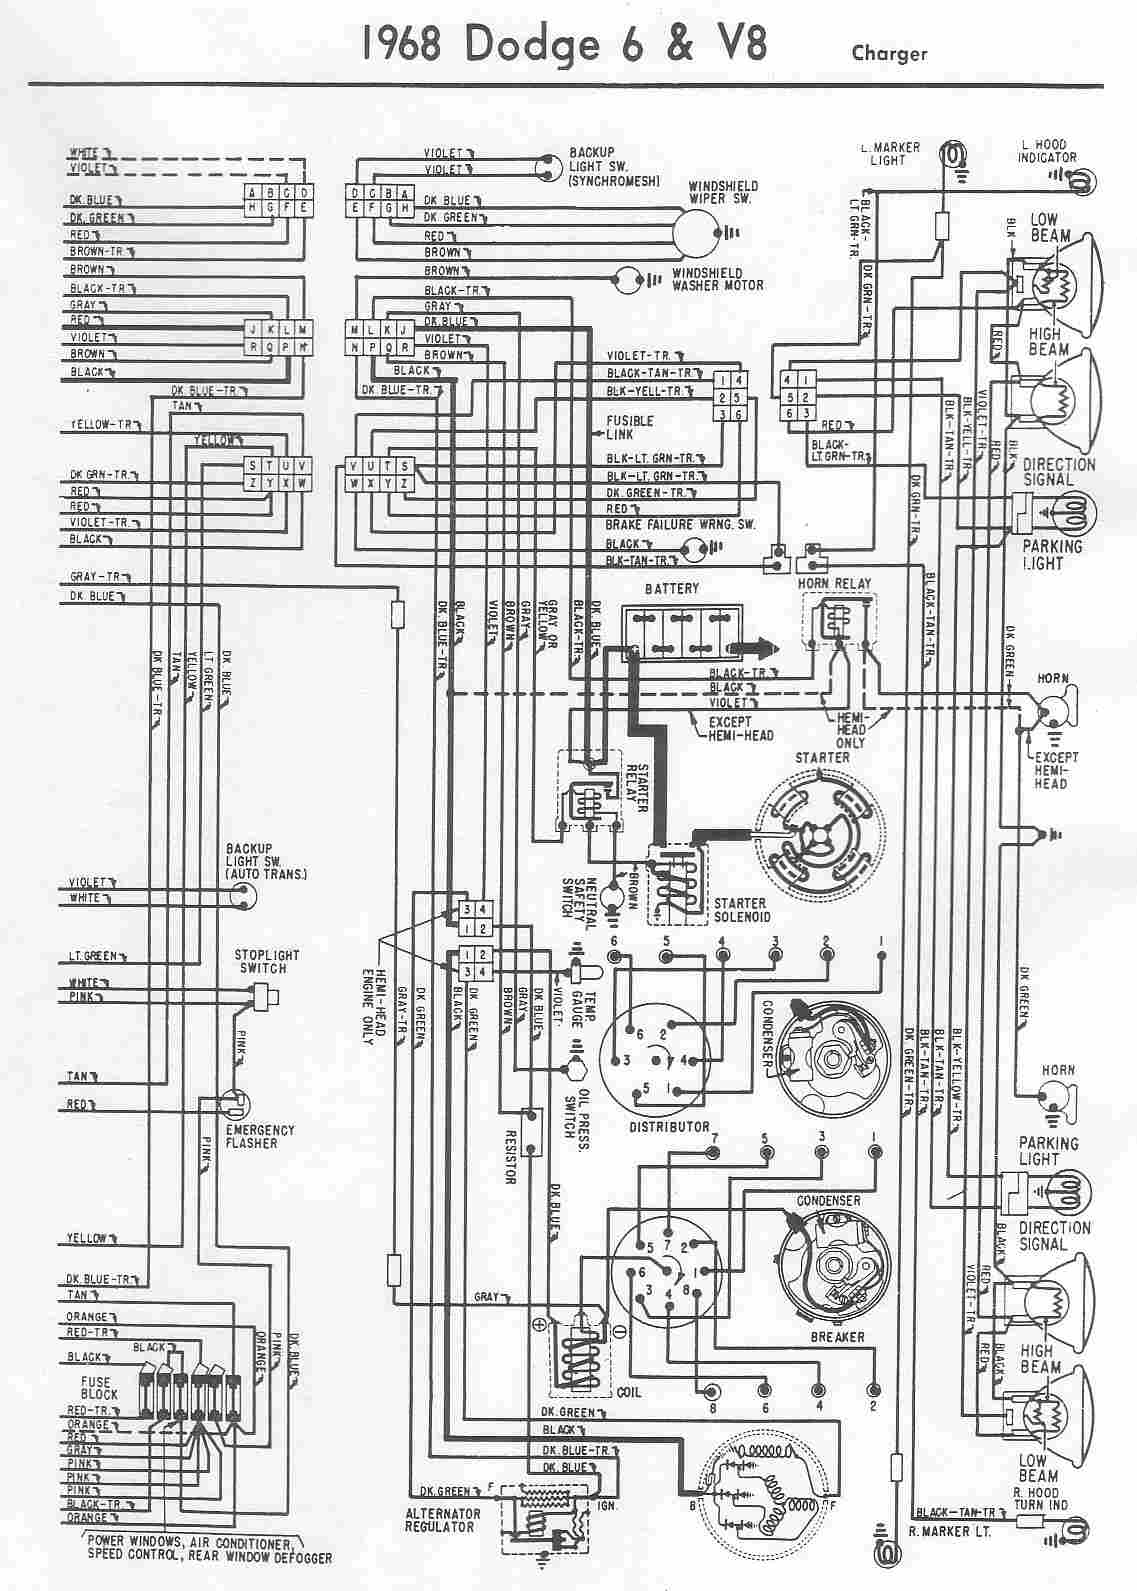 small resolution of 1970 dodge charger wiring diagram likewise 1969 dodge charger tail 2010 dodge charger fuse locations 1969 dodge charger fuse box diagram